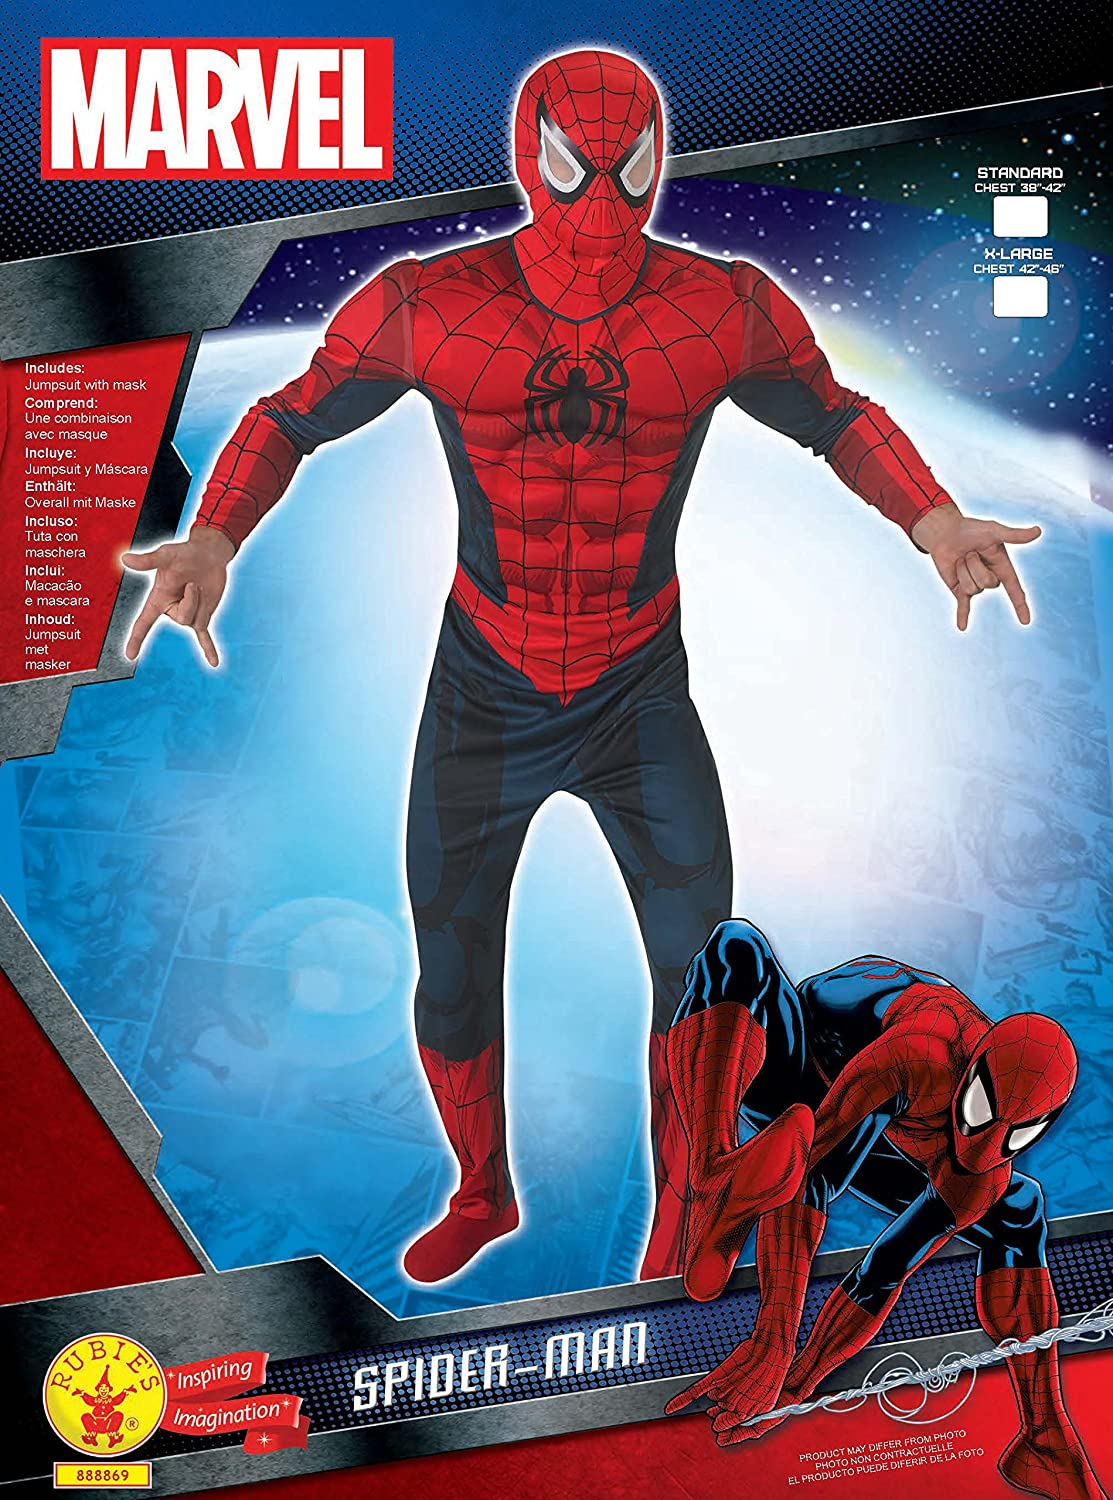 Amazon.com: Standard Size Mens Deluxe Spiderman Classic: Home Improvement